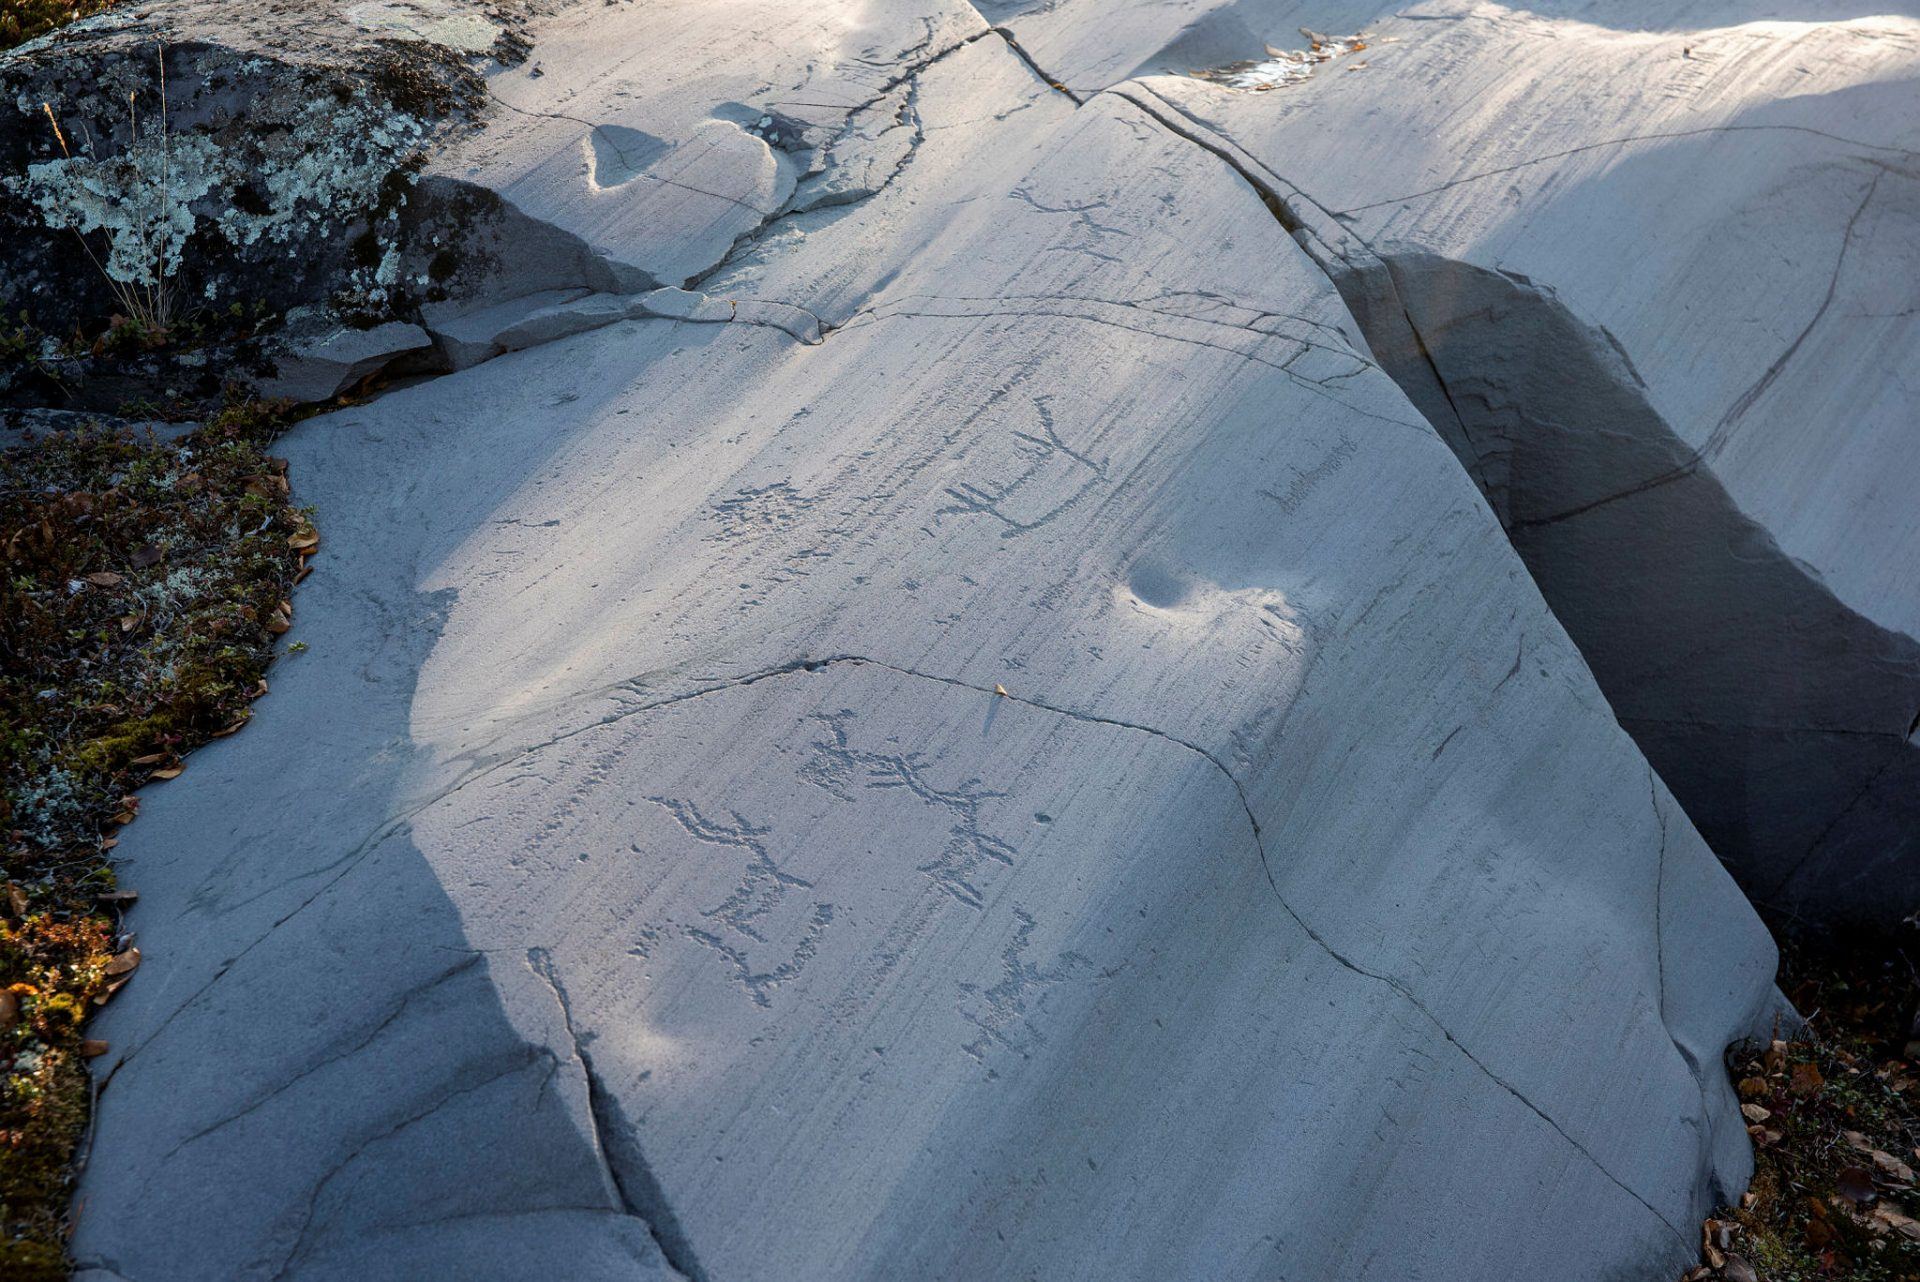 Rock carvings in Hjemmeluft in Alta: Scene featuring people, boat and reindeer. Photo: Arve Kjersheim, the Dircetorate for Cultural Heritage